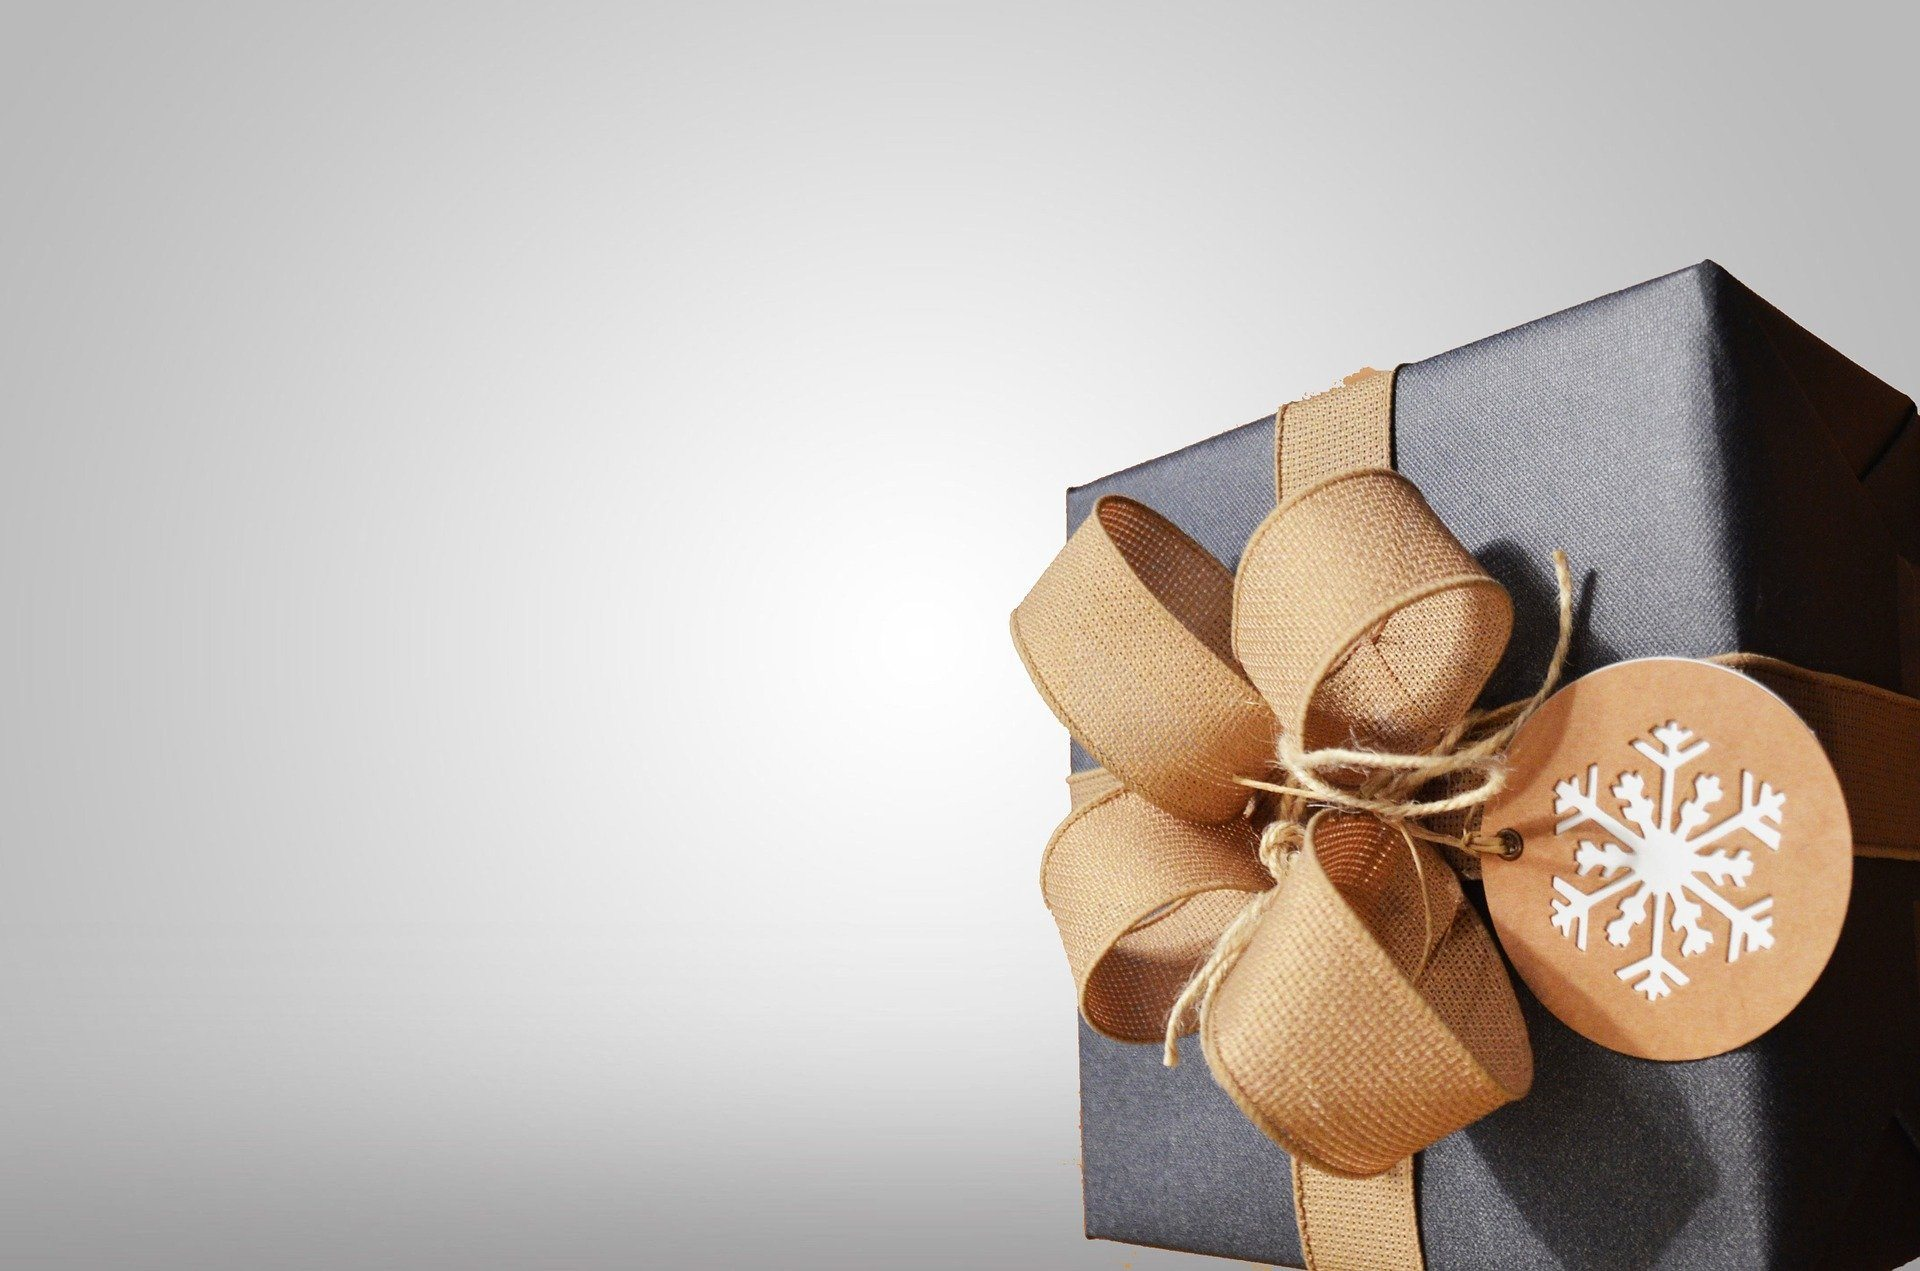 Christmas present wrapped in a brown box with a gold ribbon that could be a skincare product